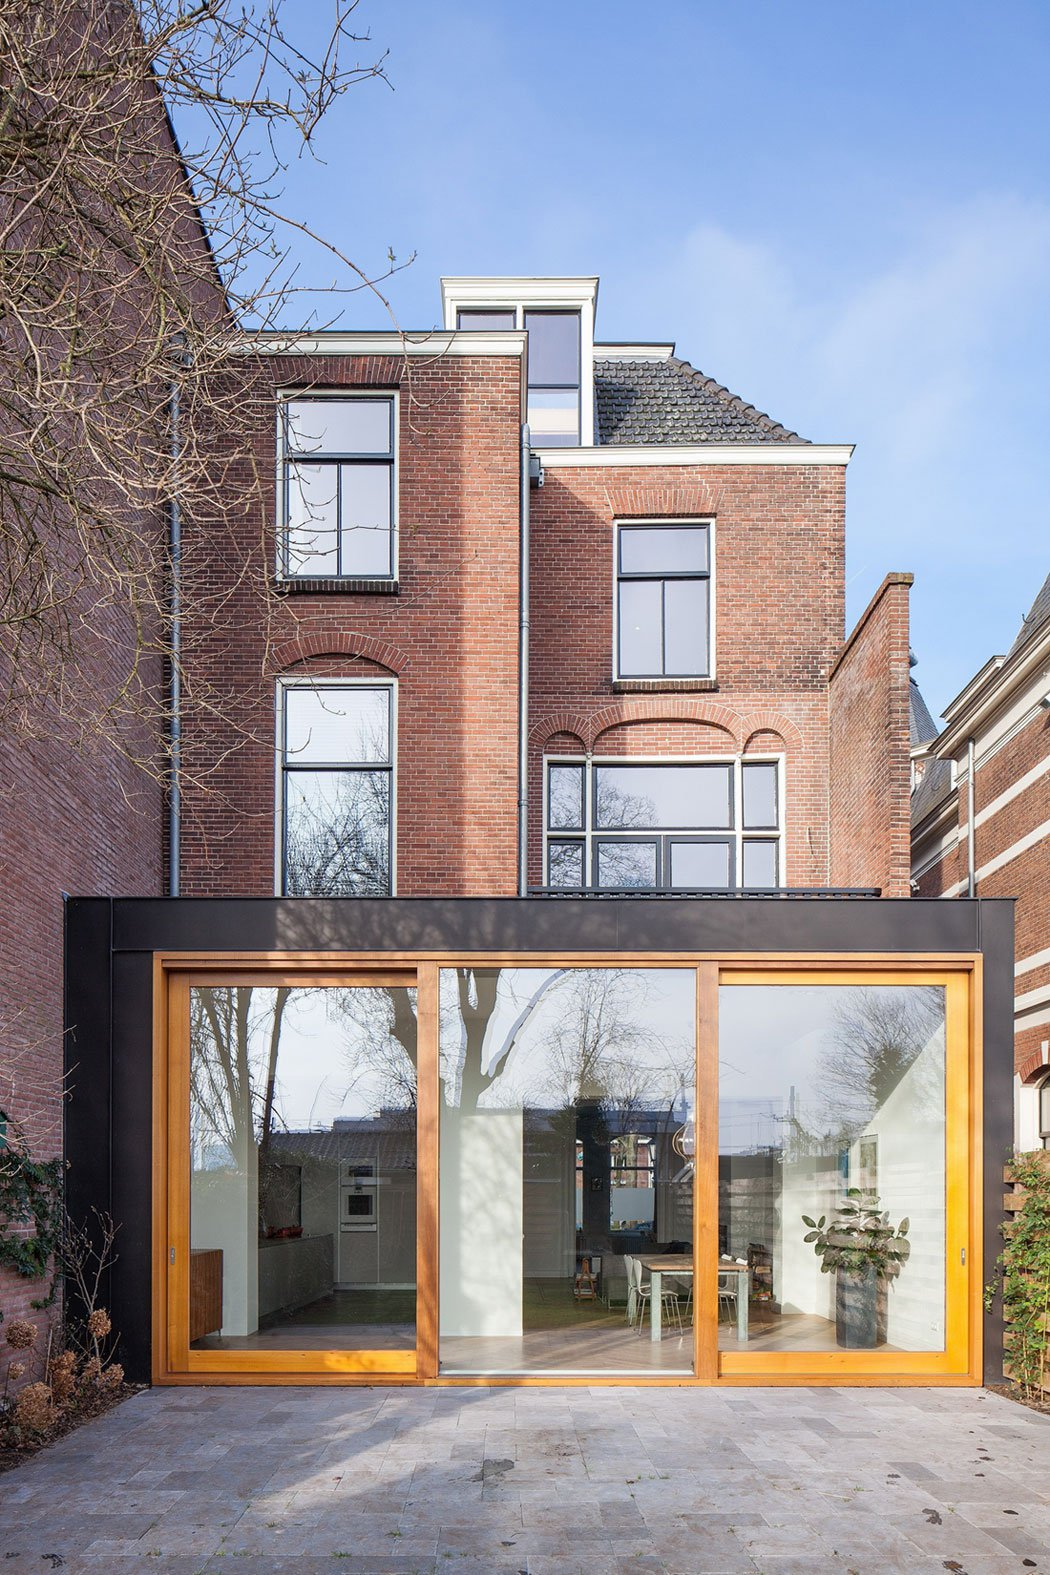 Extension-Maliebaan-Utrecht-01